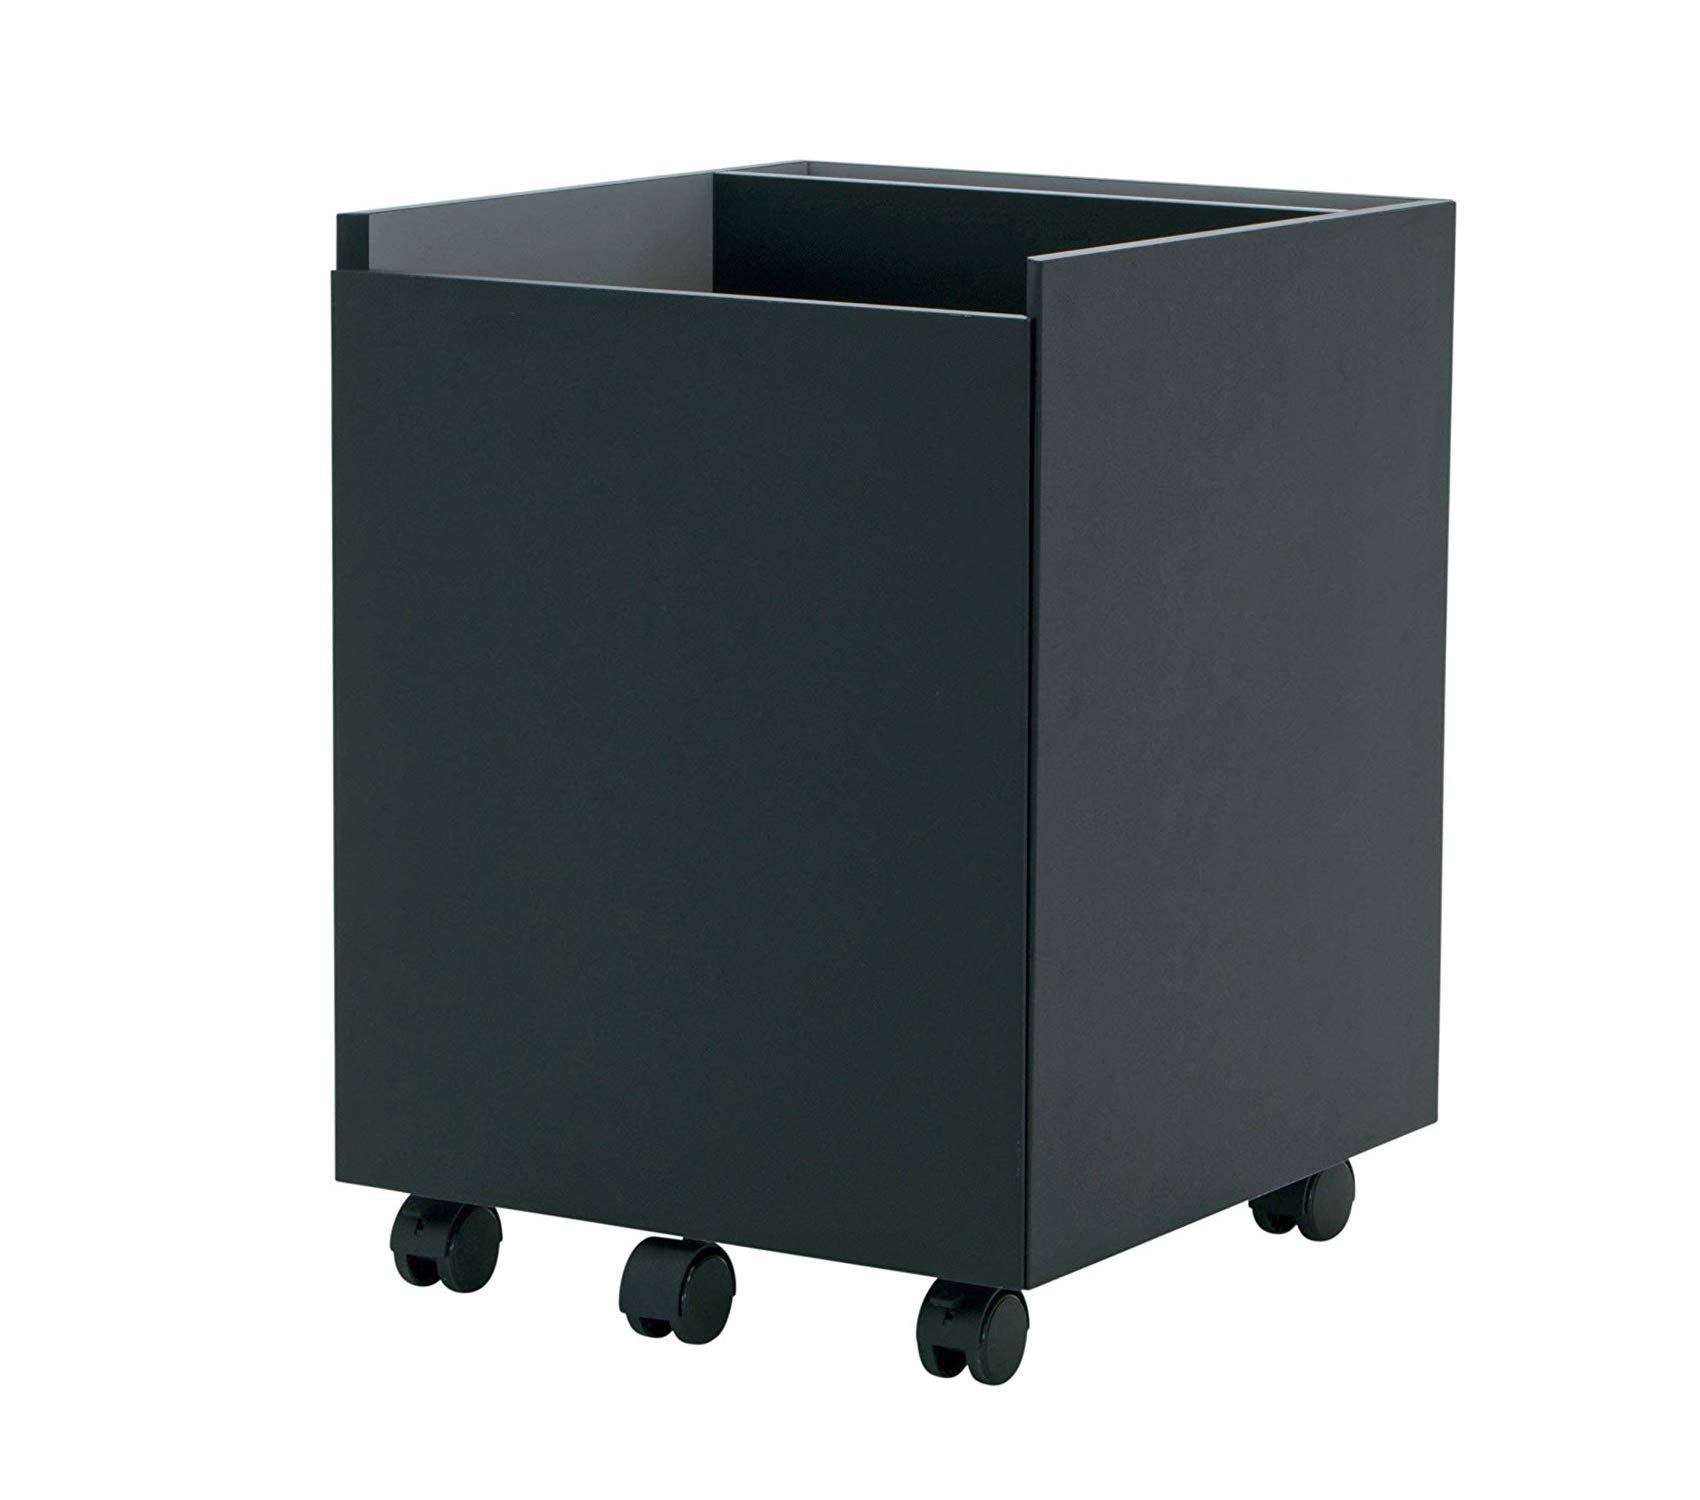 Cаlicо Dеsigns Office Home Furniture Premium Niche Mobile File Cabinet,Black by Cаlicо Dеsigns